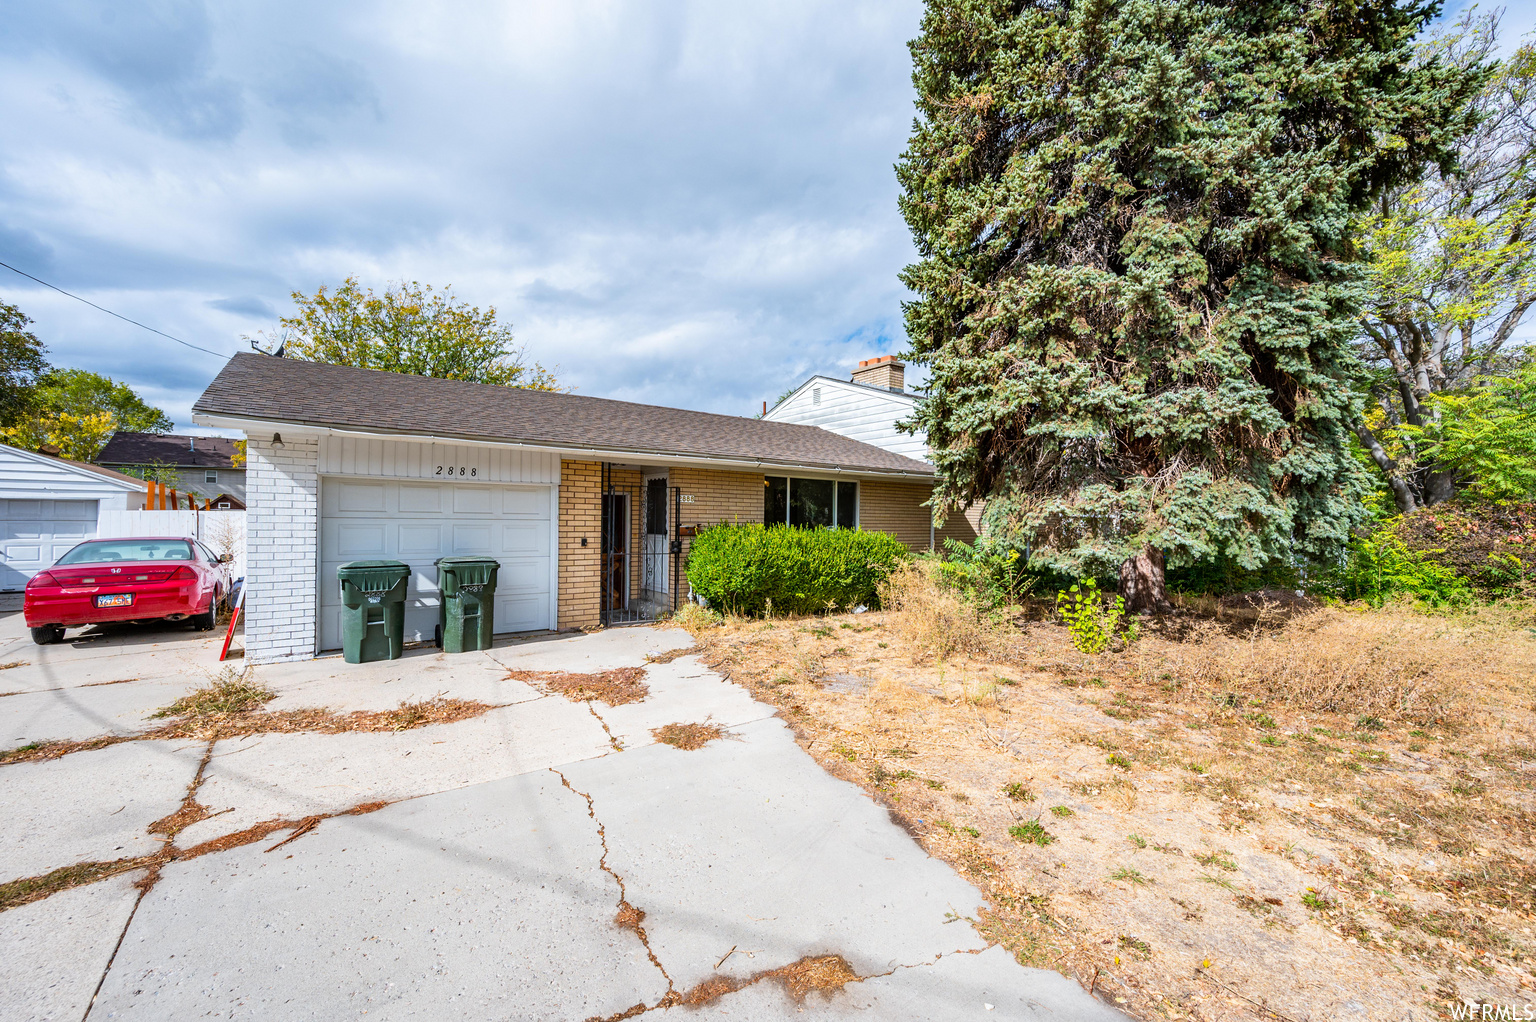 2888 S 500 E, Salt Lake City UT 84106